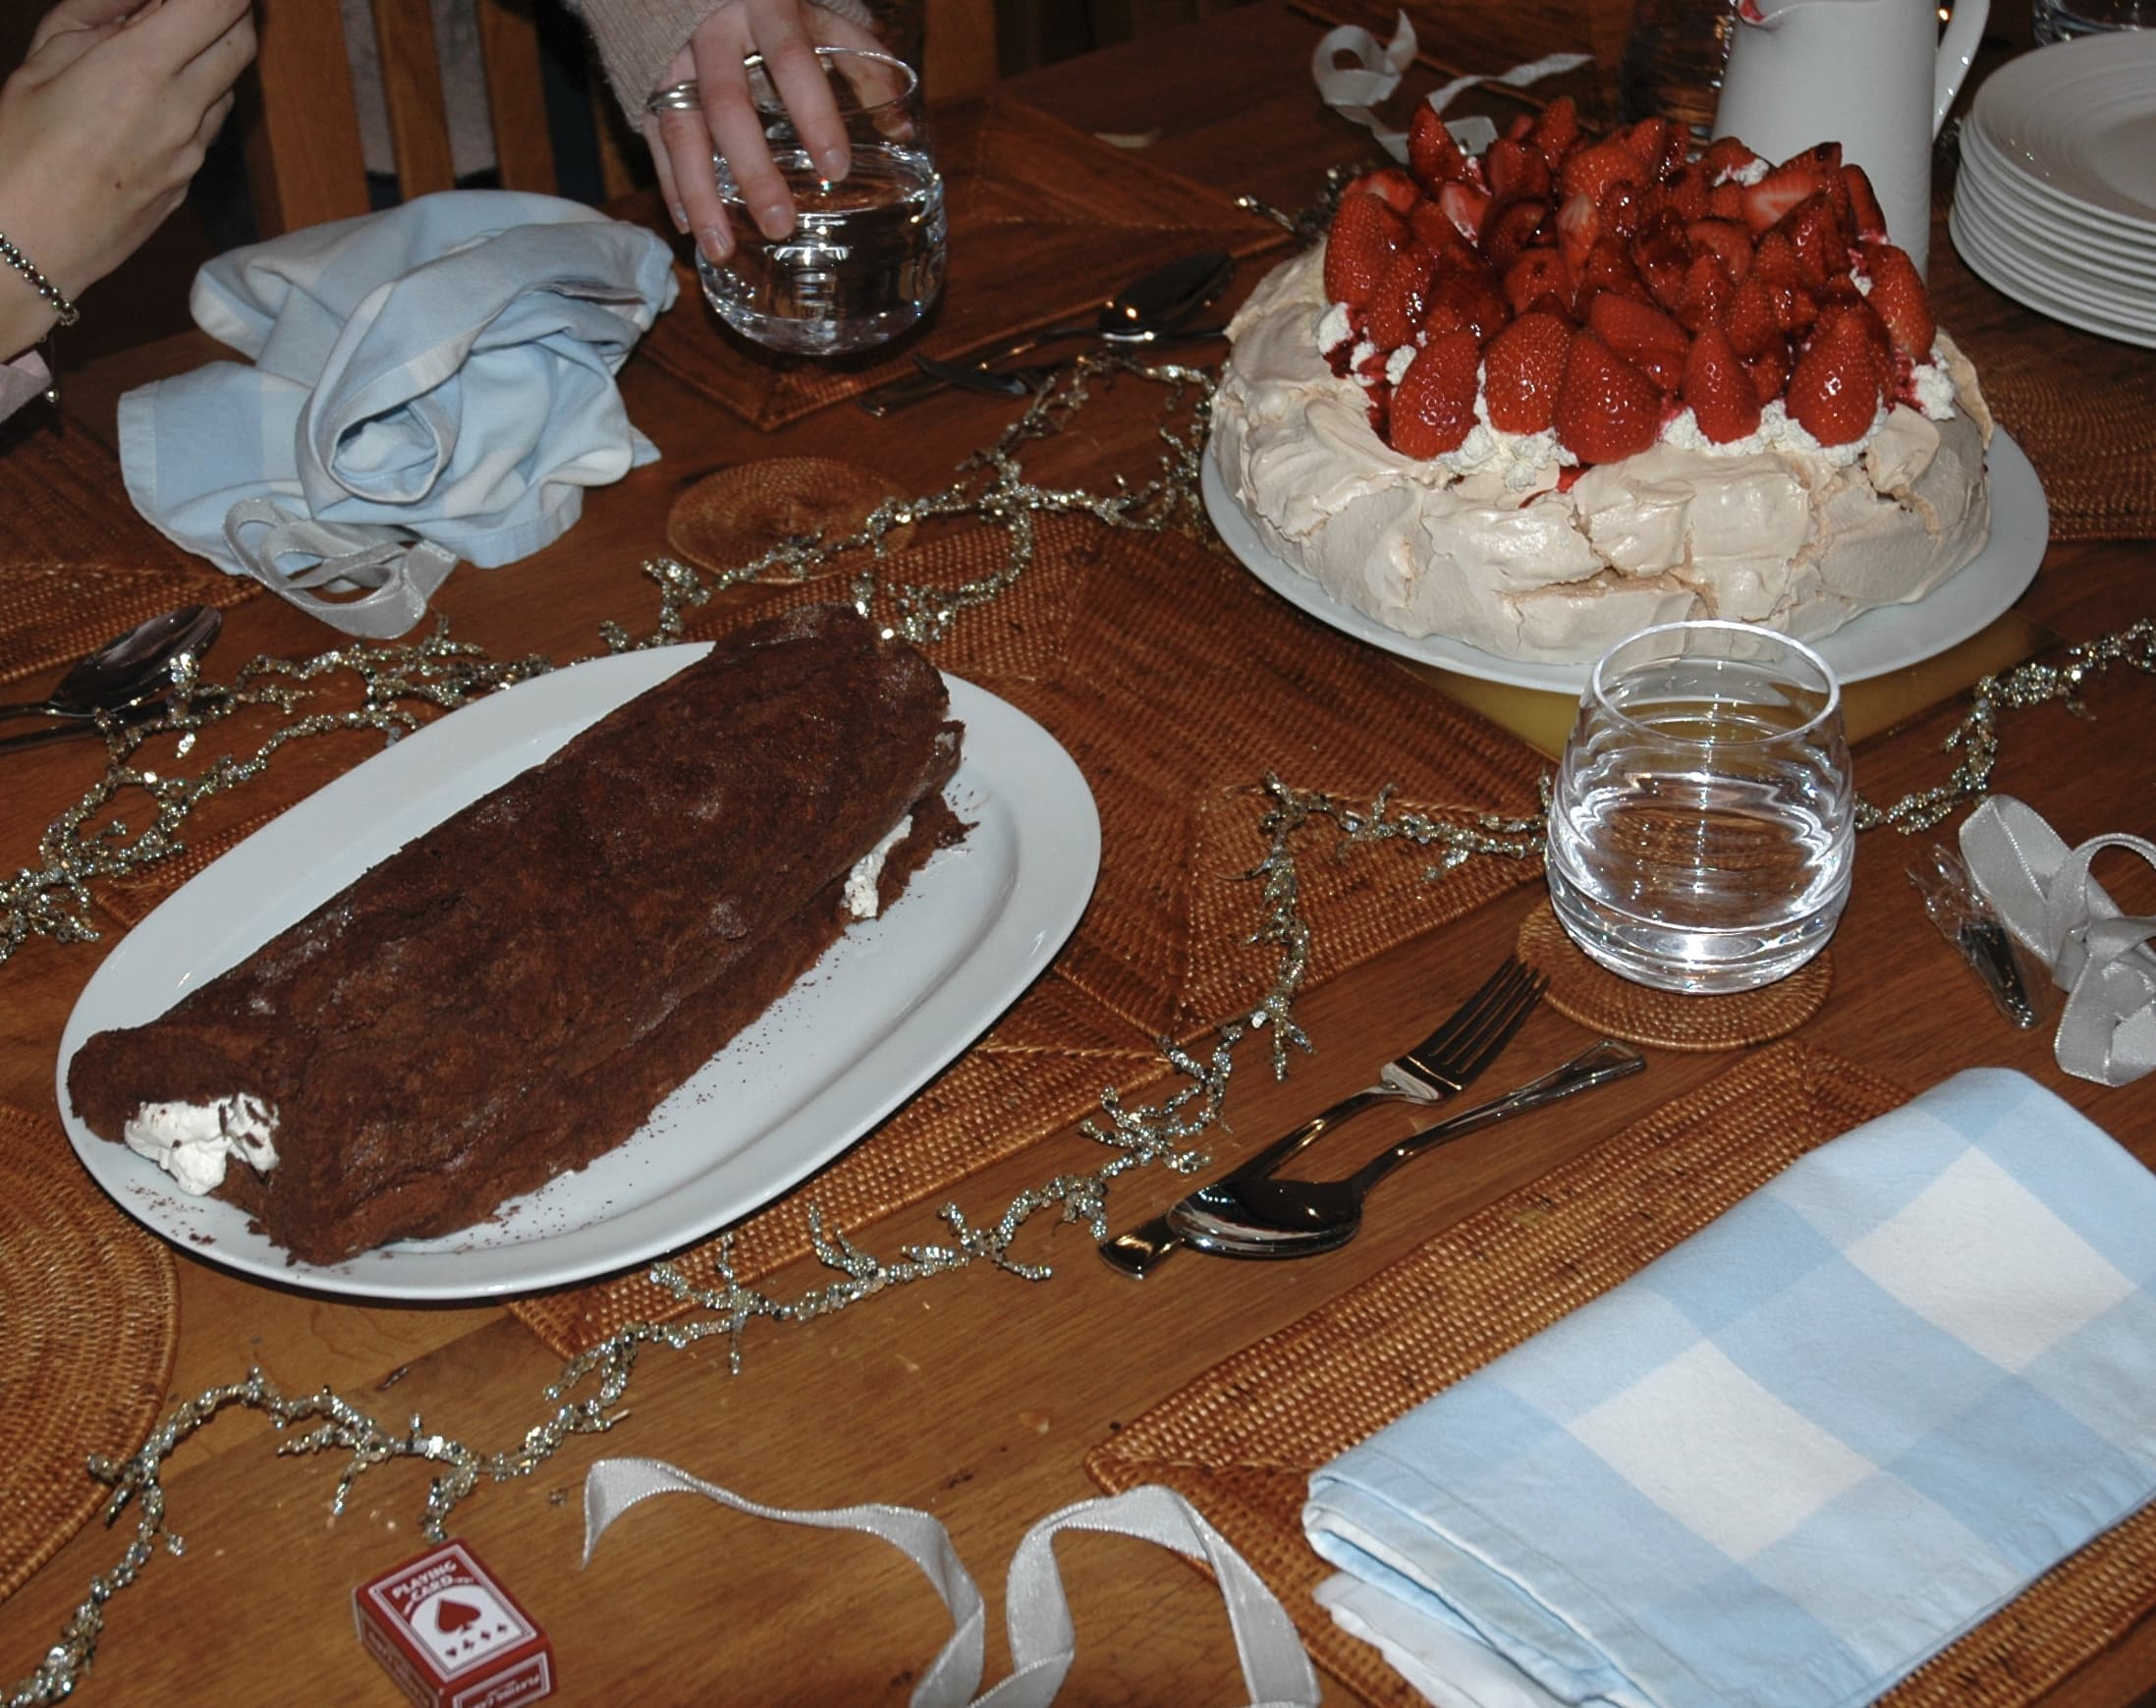 Christmas Dessert: Chocolate Roulade